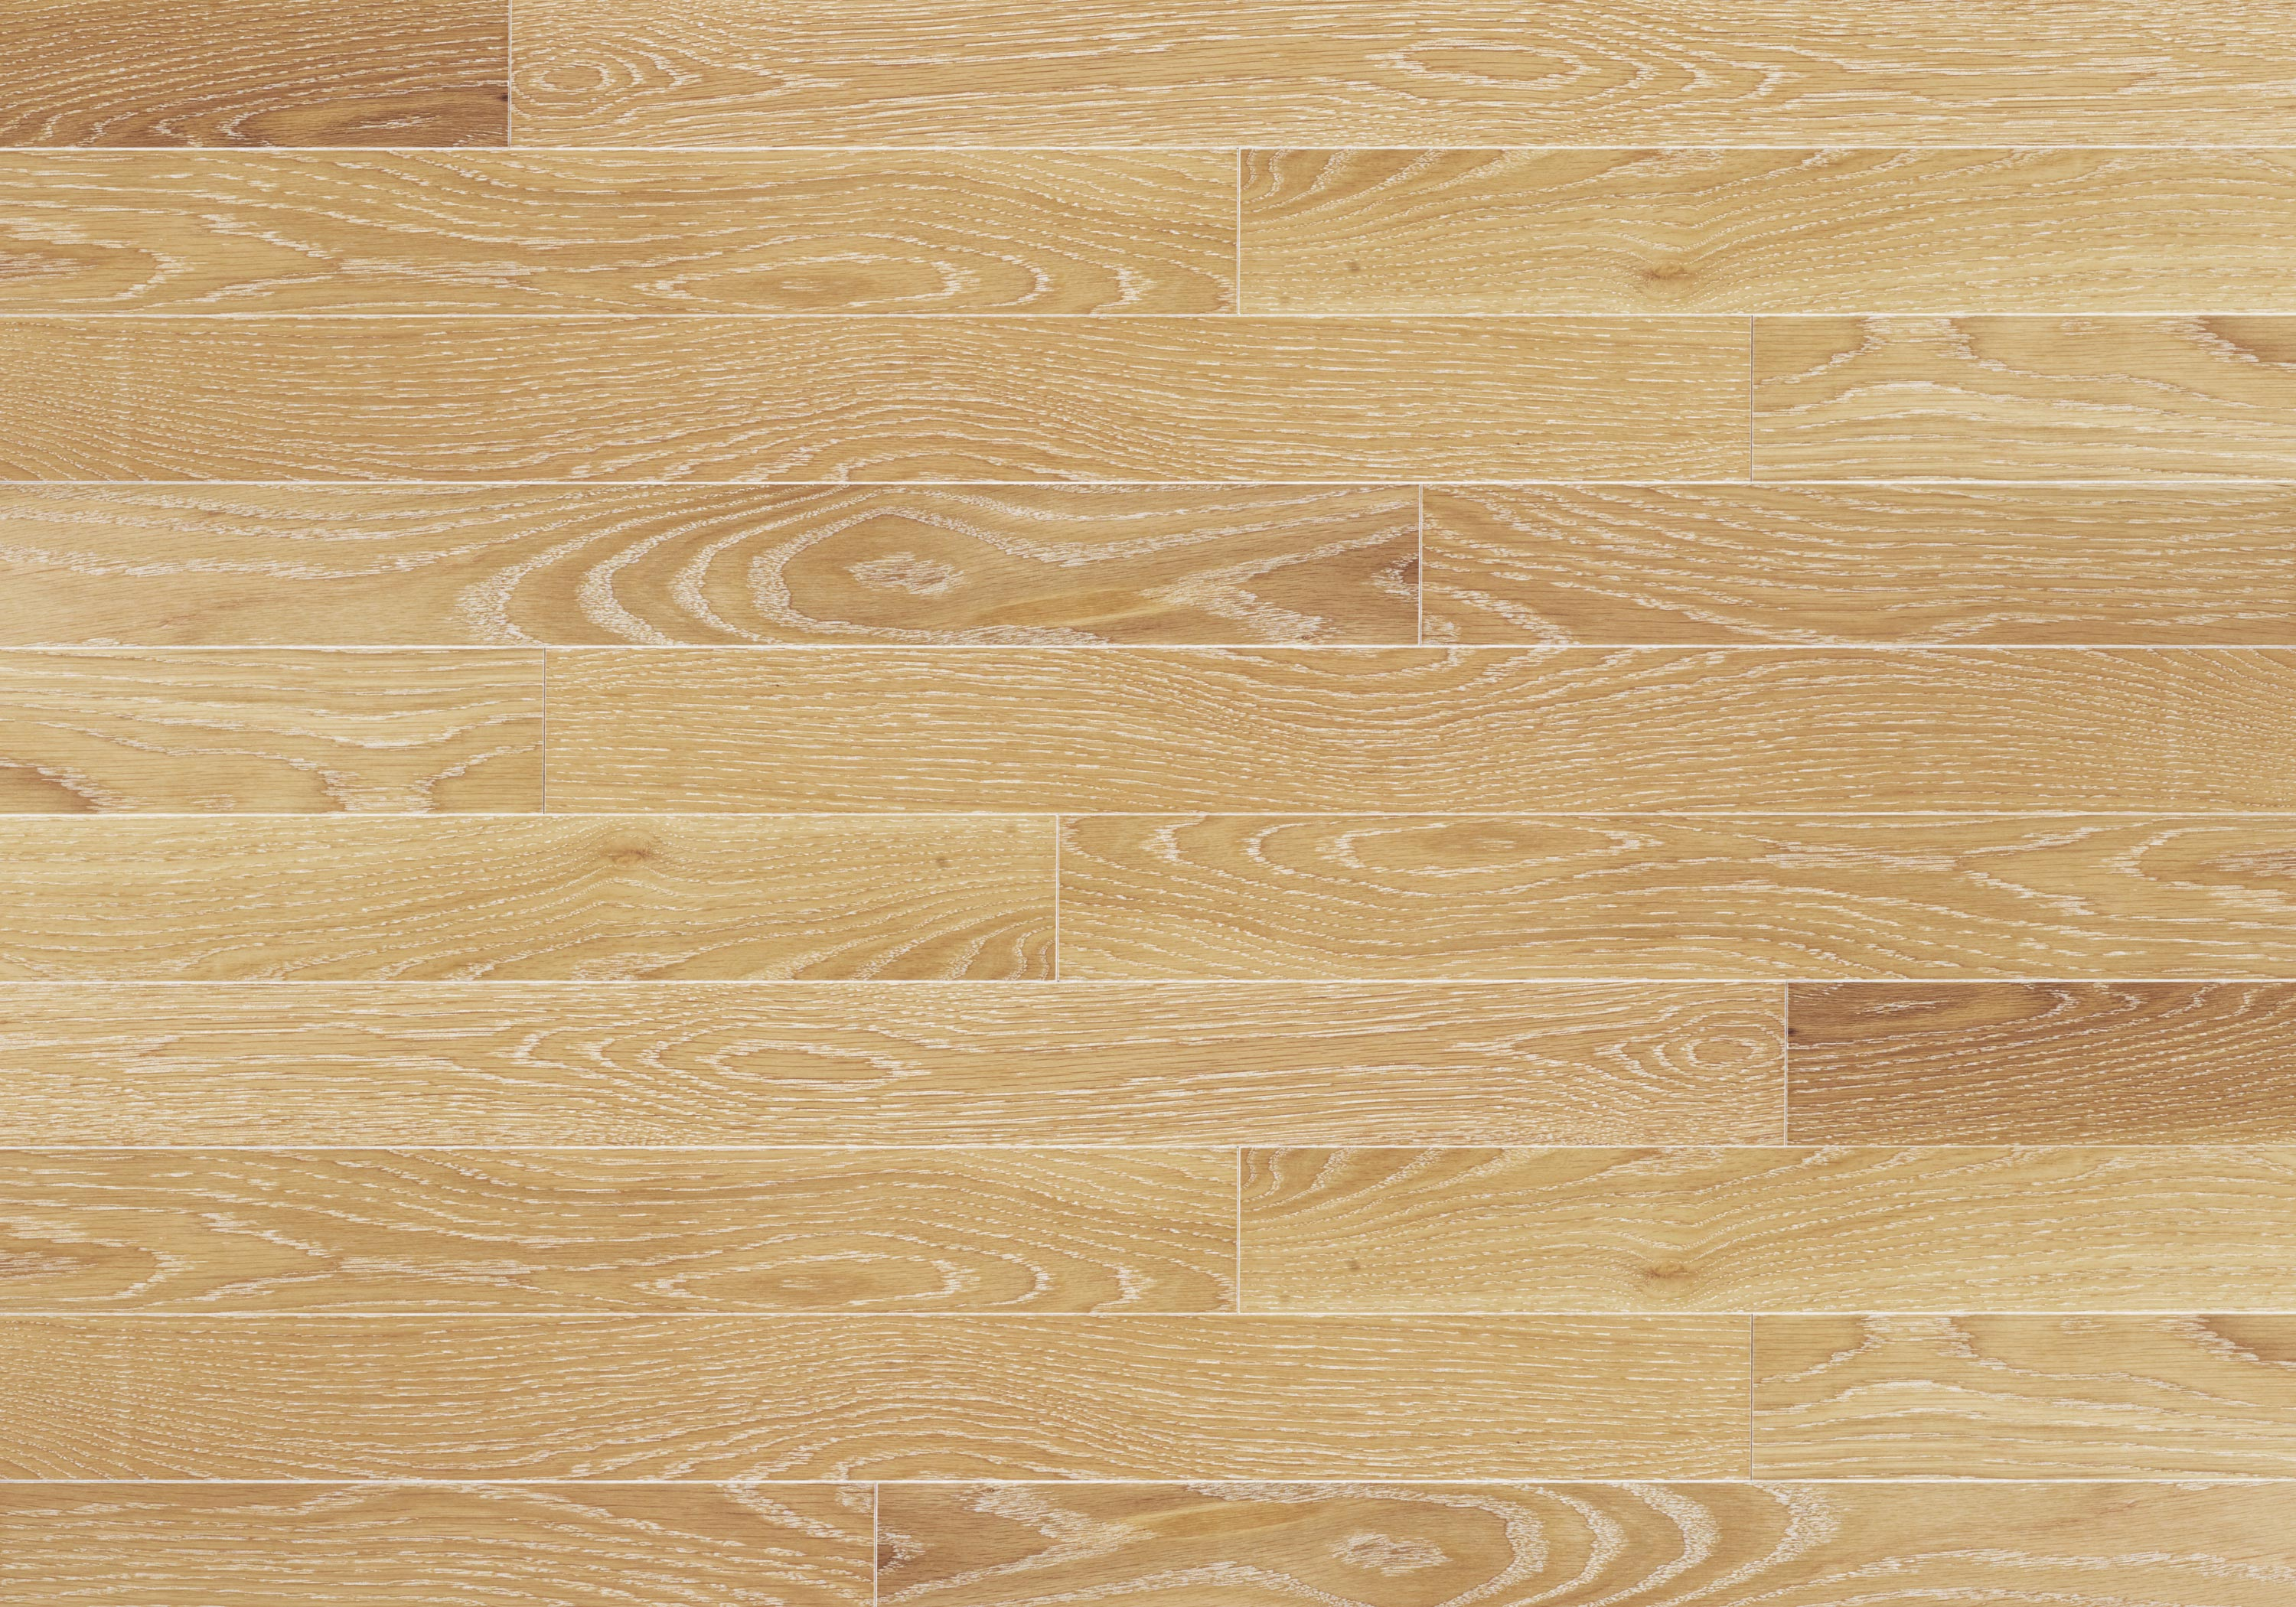 White Oak Hardwood Flooring Natural Beachwood Elements